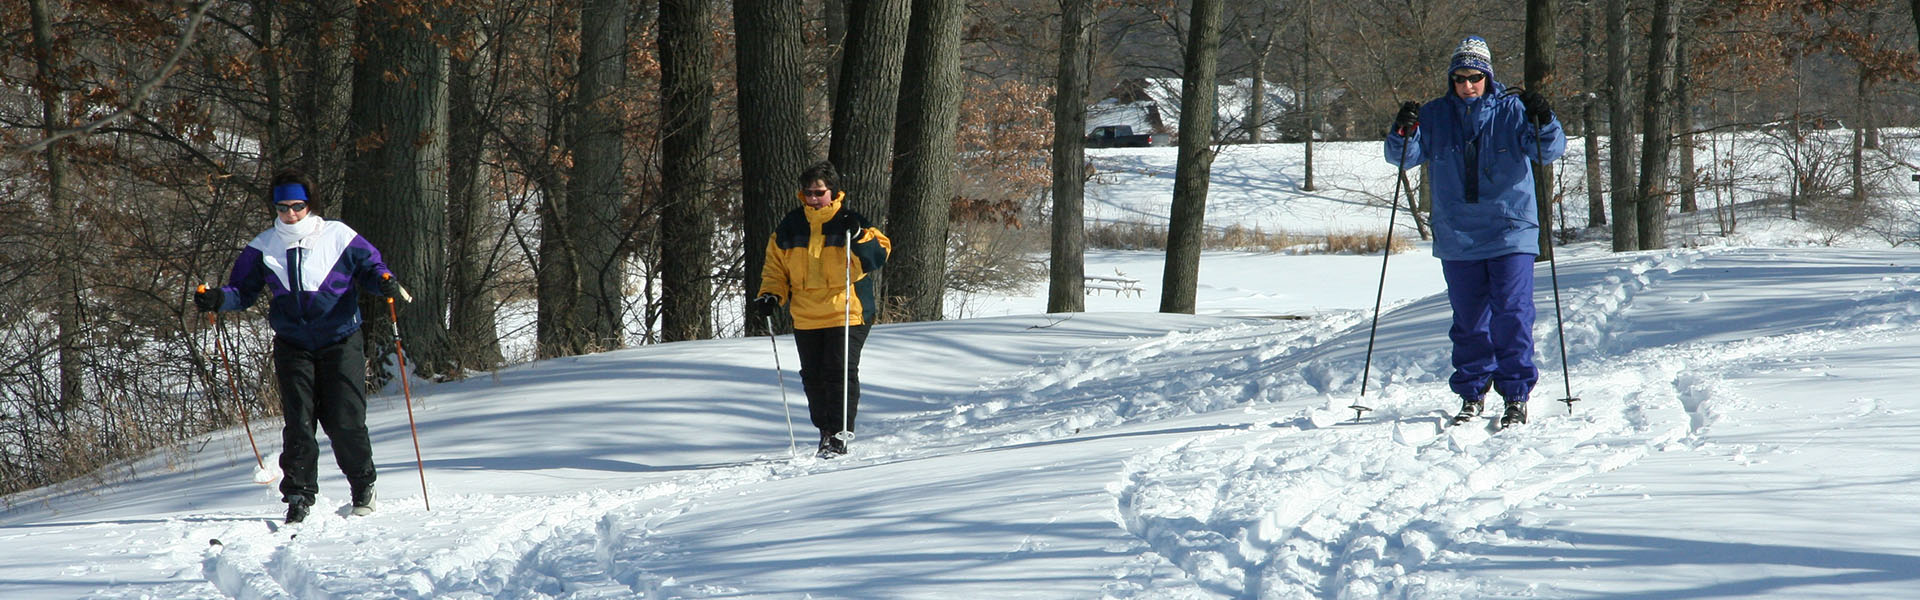 Importance of Leisure & Recreation for Health - Huron